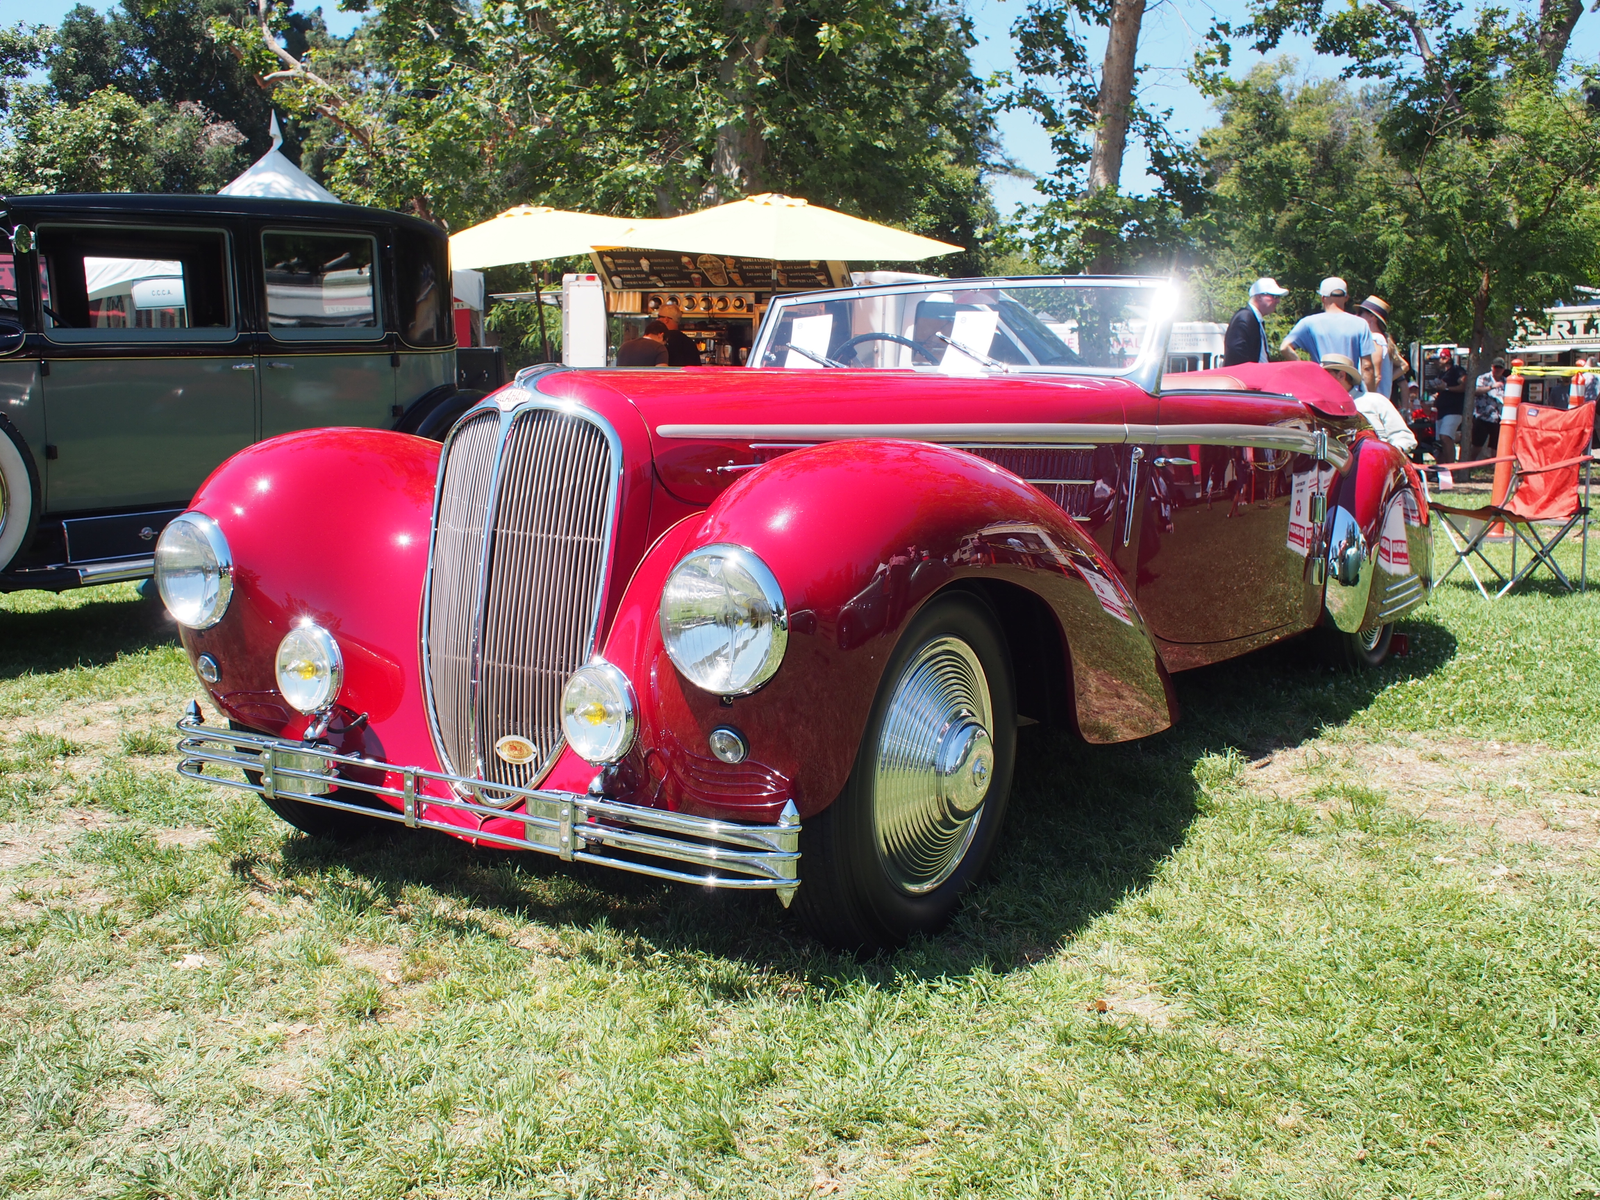 Another stunner was this 1947 Delahaye.